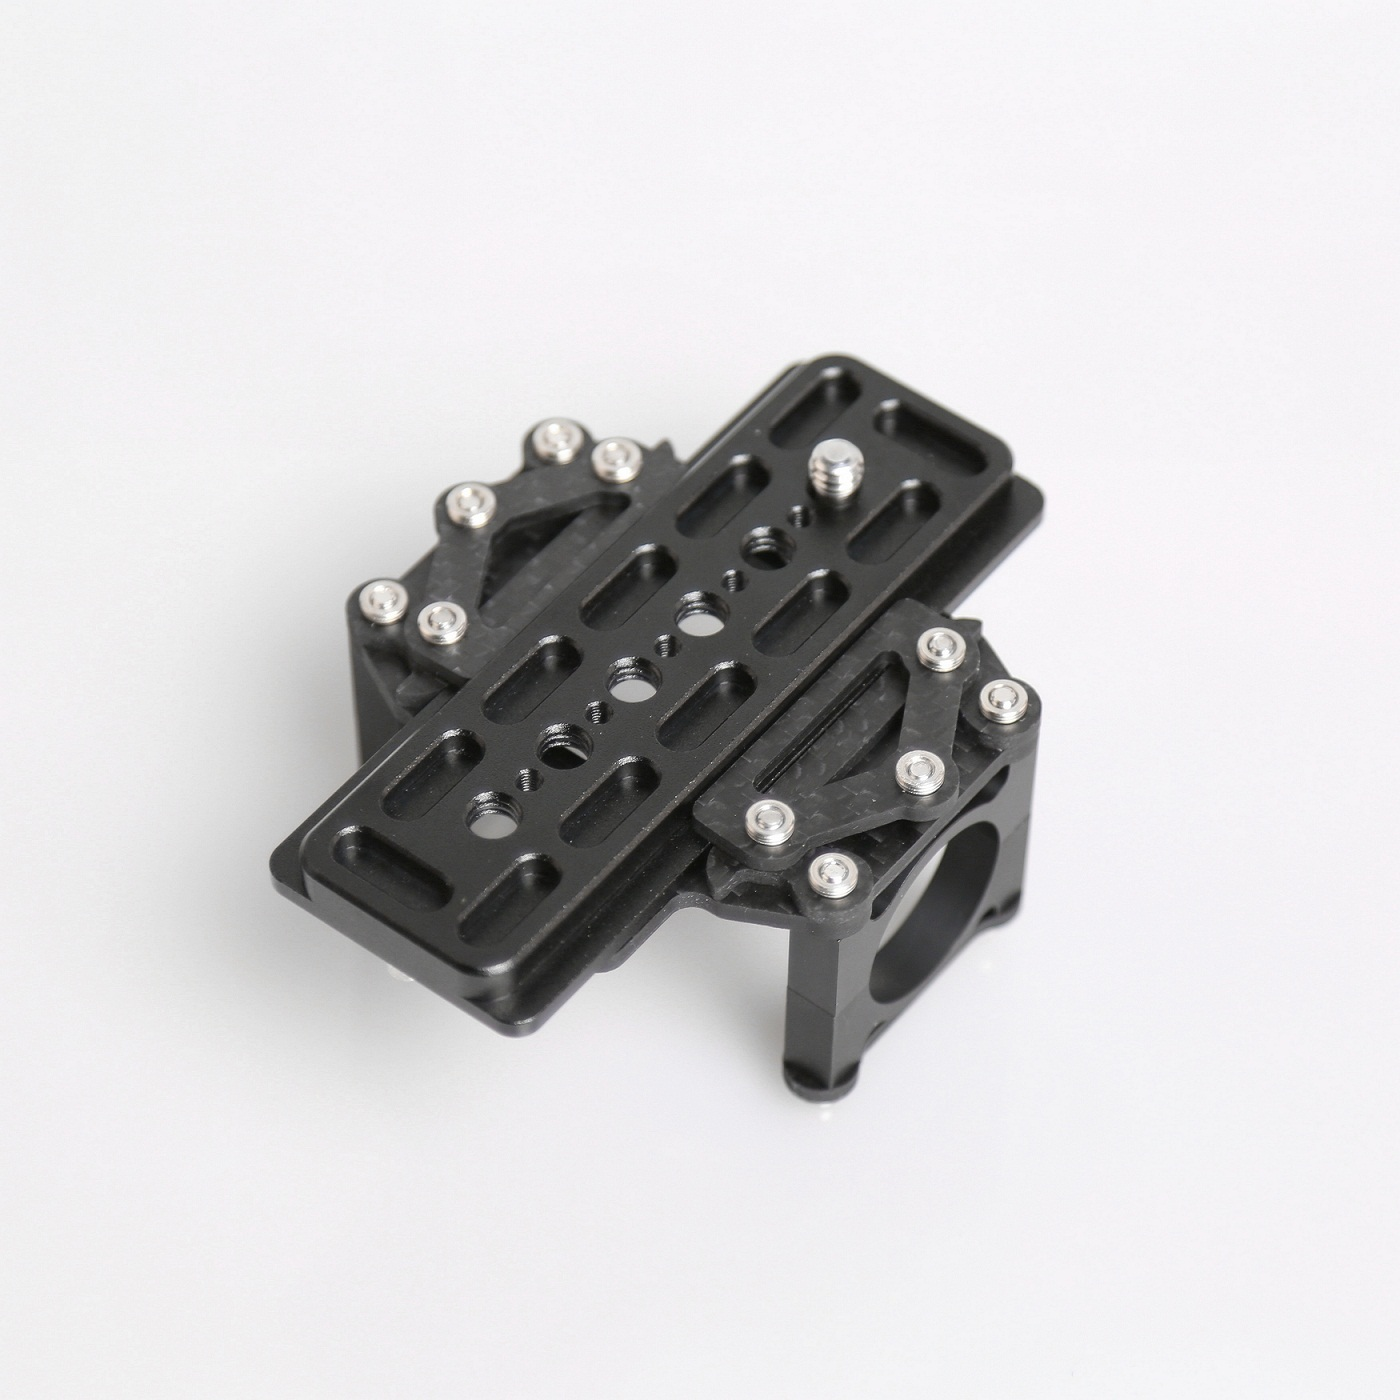 ADJUSTABLE CAMERA RAIL Aluminum clamp for Canon 5D